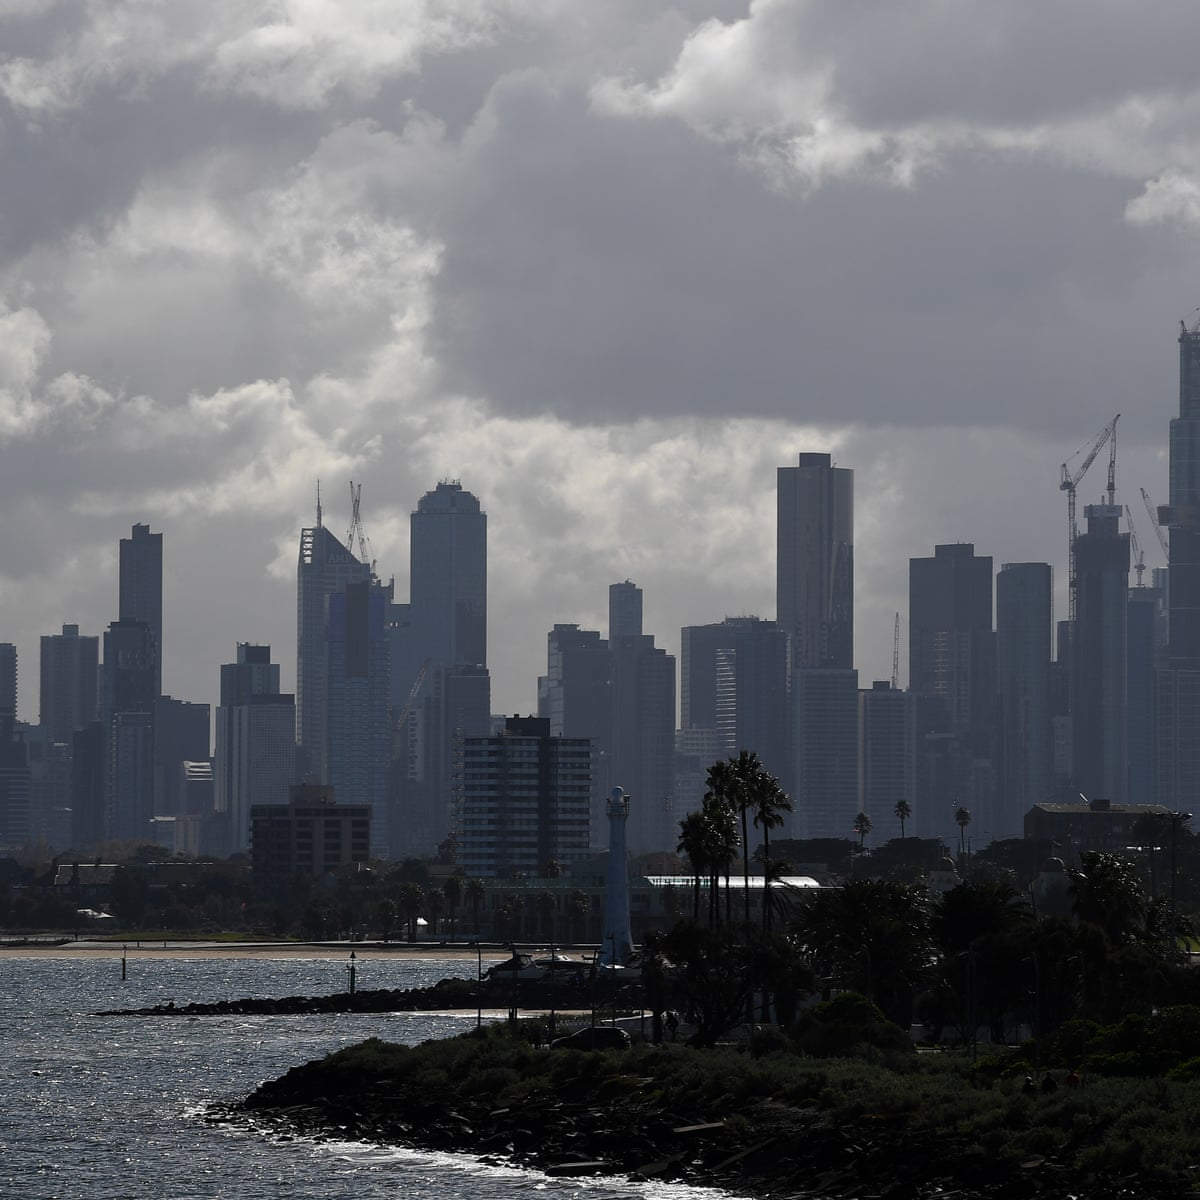 Christmas Day Weather Melbourne 2021 Australia Christmas Day Weather Mild For Most But Hot In Perth And Storms Possible In Queensland Australia Weather The Guardian